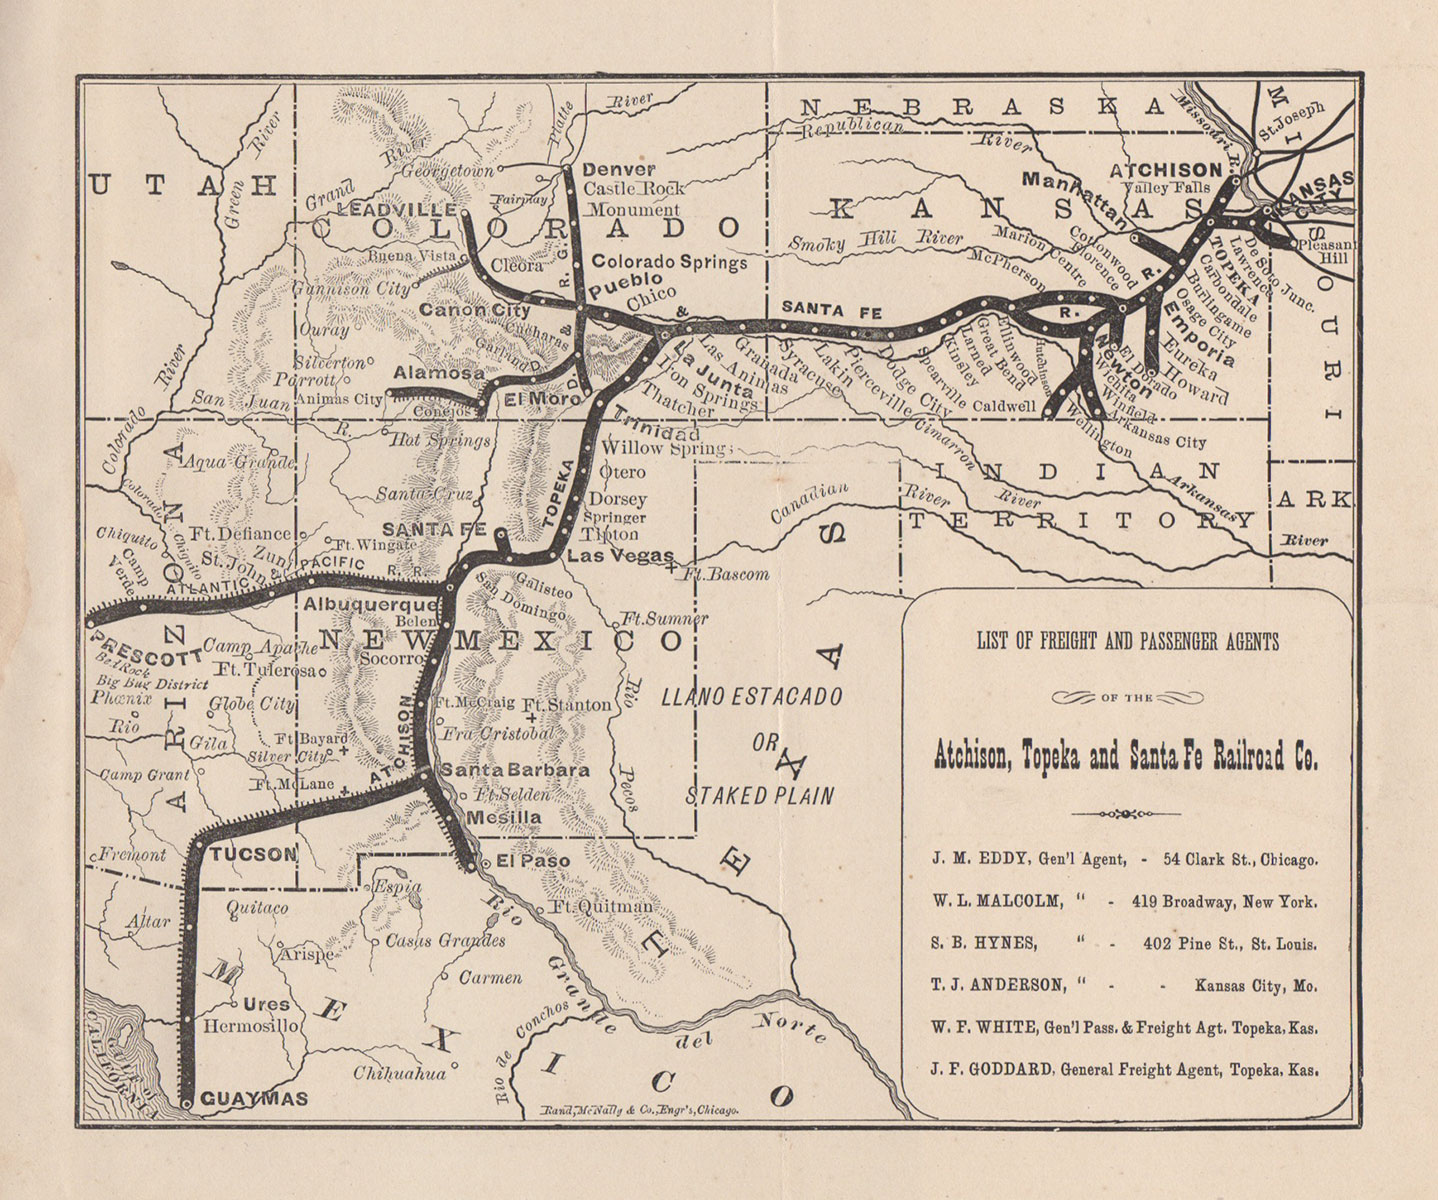 Map Of Arizona 1880.Arizona Illustrated History Mining Railroads Lands Facts For